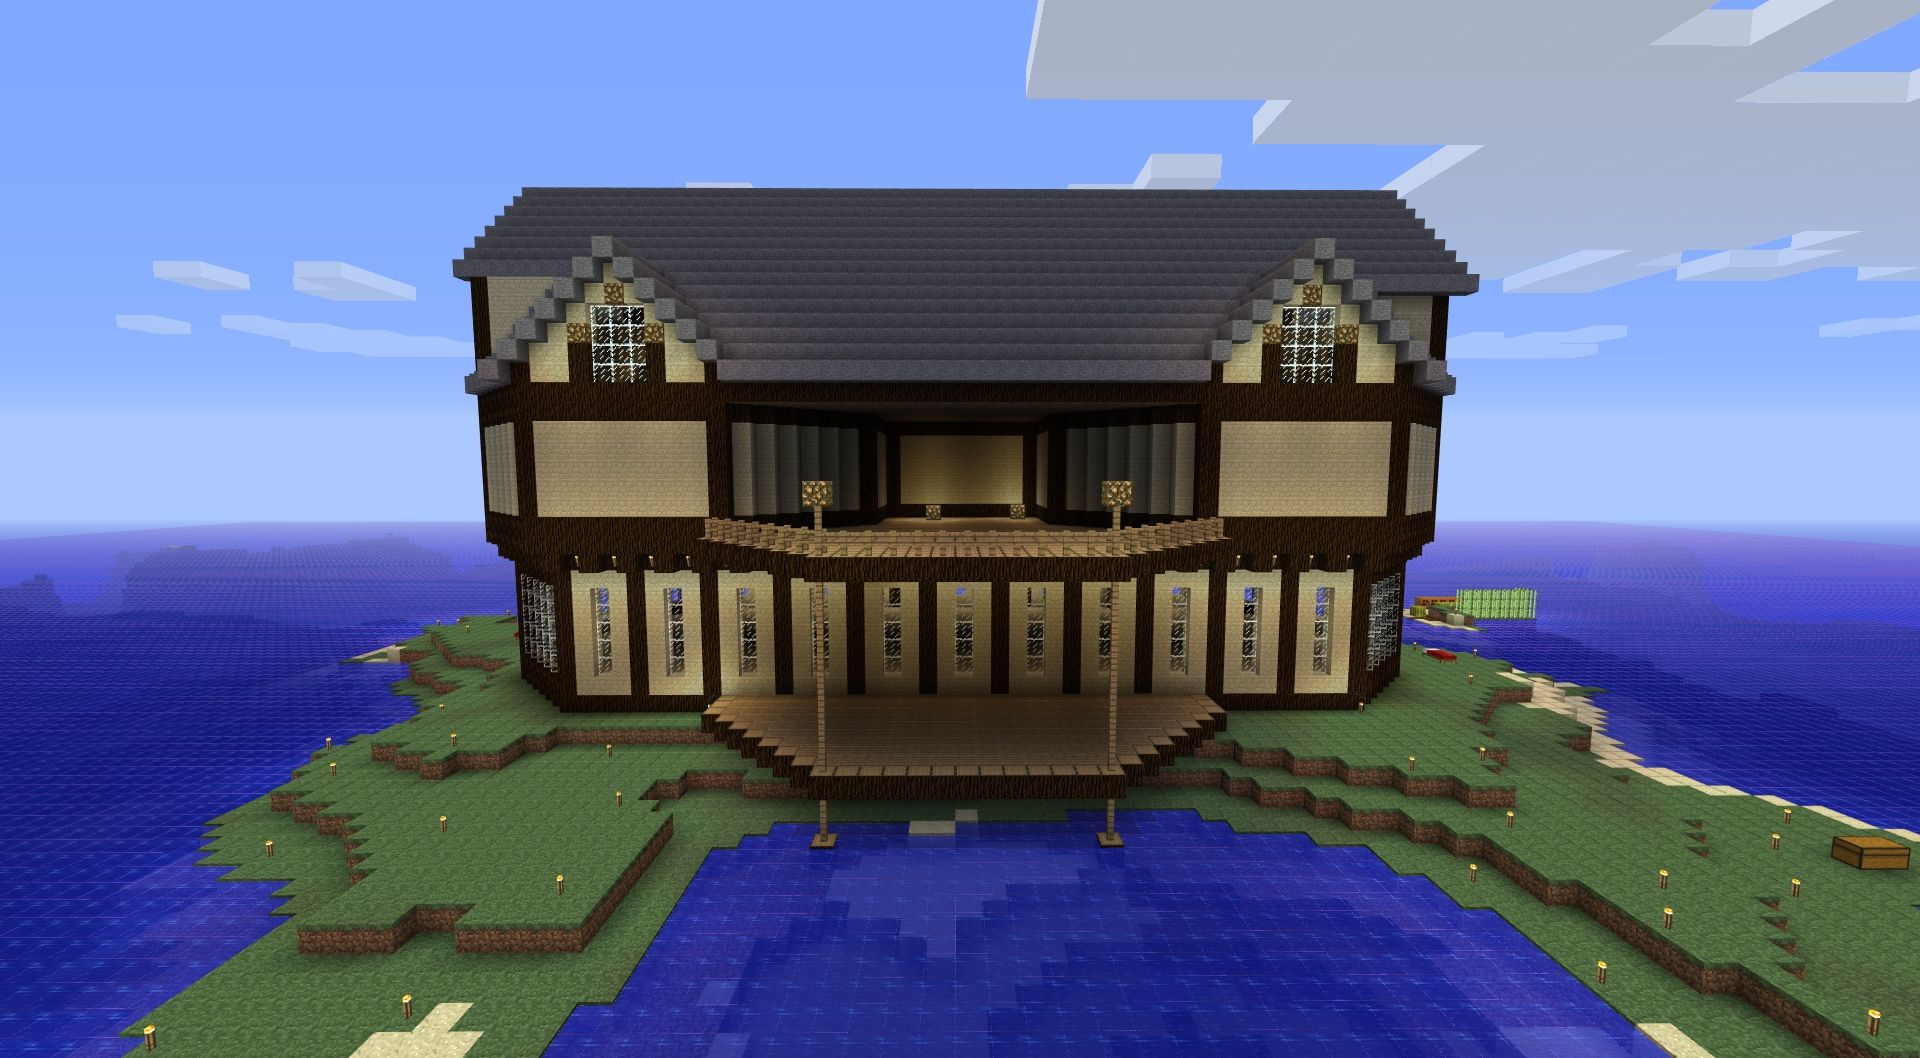 Porch Columns And Roof Not A Square Building Minecraft Houses Xbox Big Minecraft Houses Minecraft Roof,Engineering And Design Process For Kids